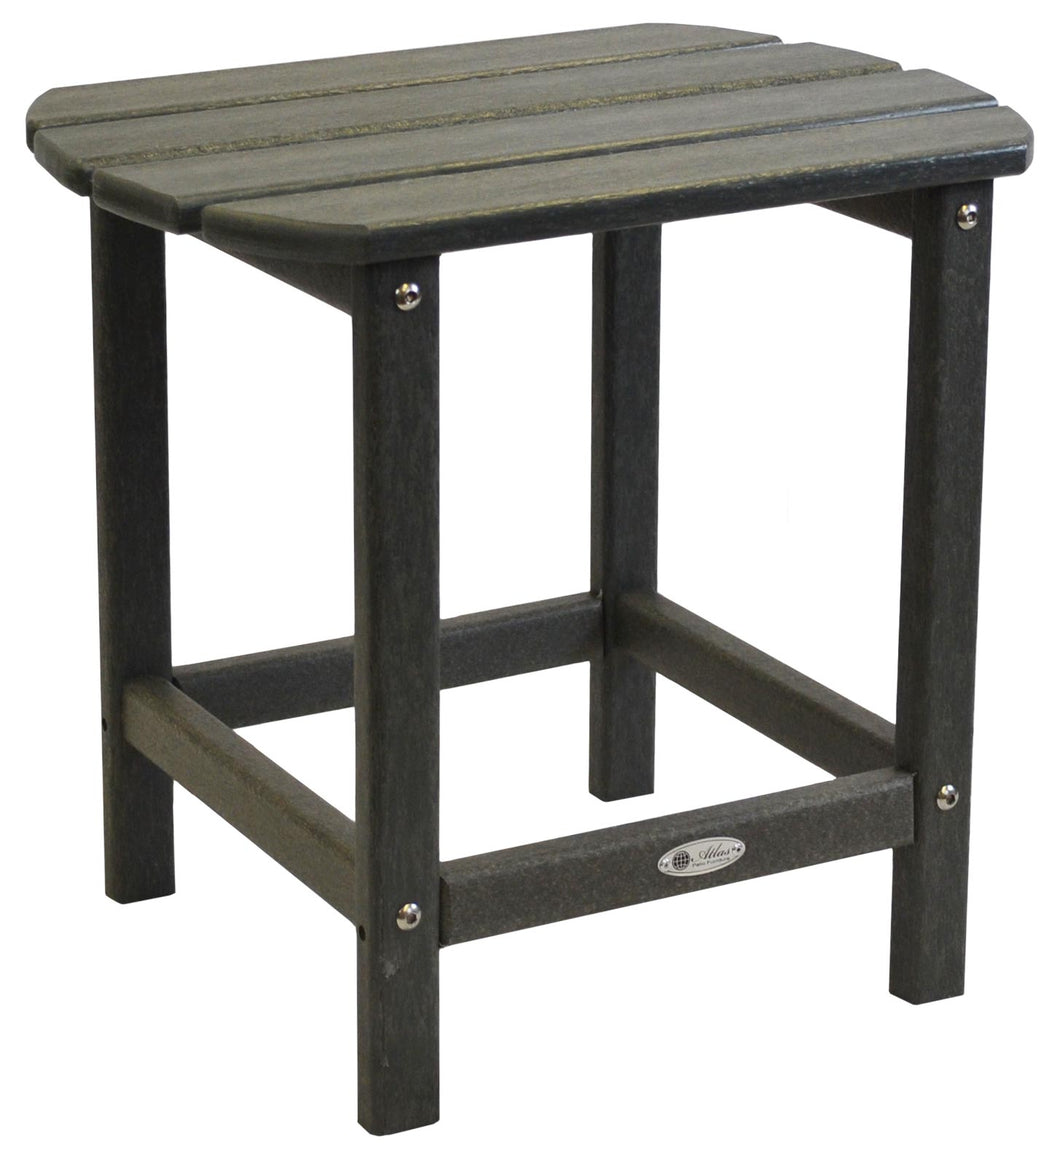 Atlas Patio Furniture - Beach Haven Poly End Table - Color: Grey